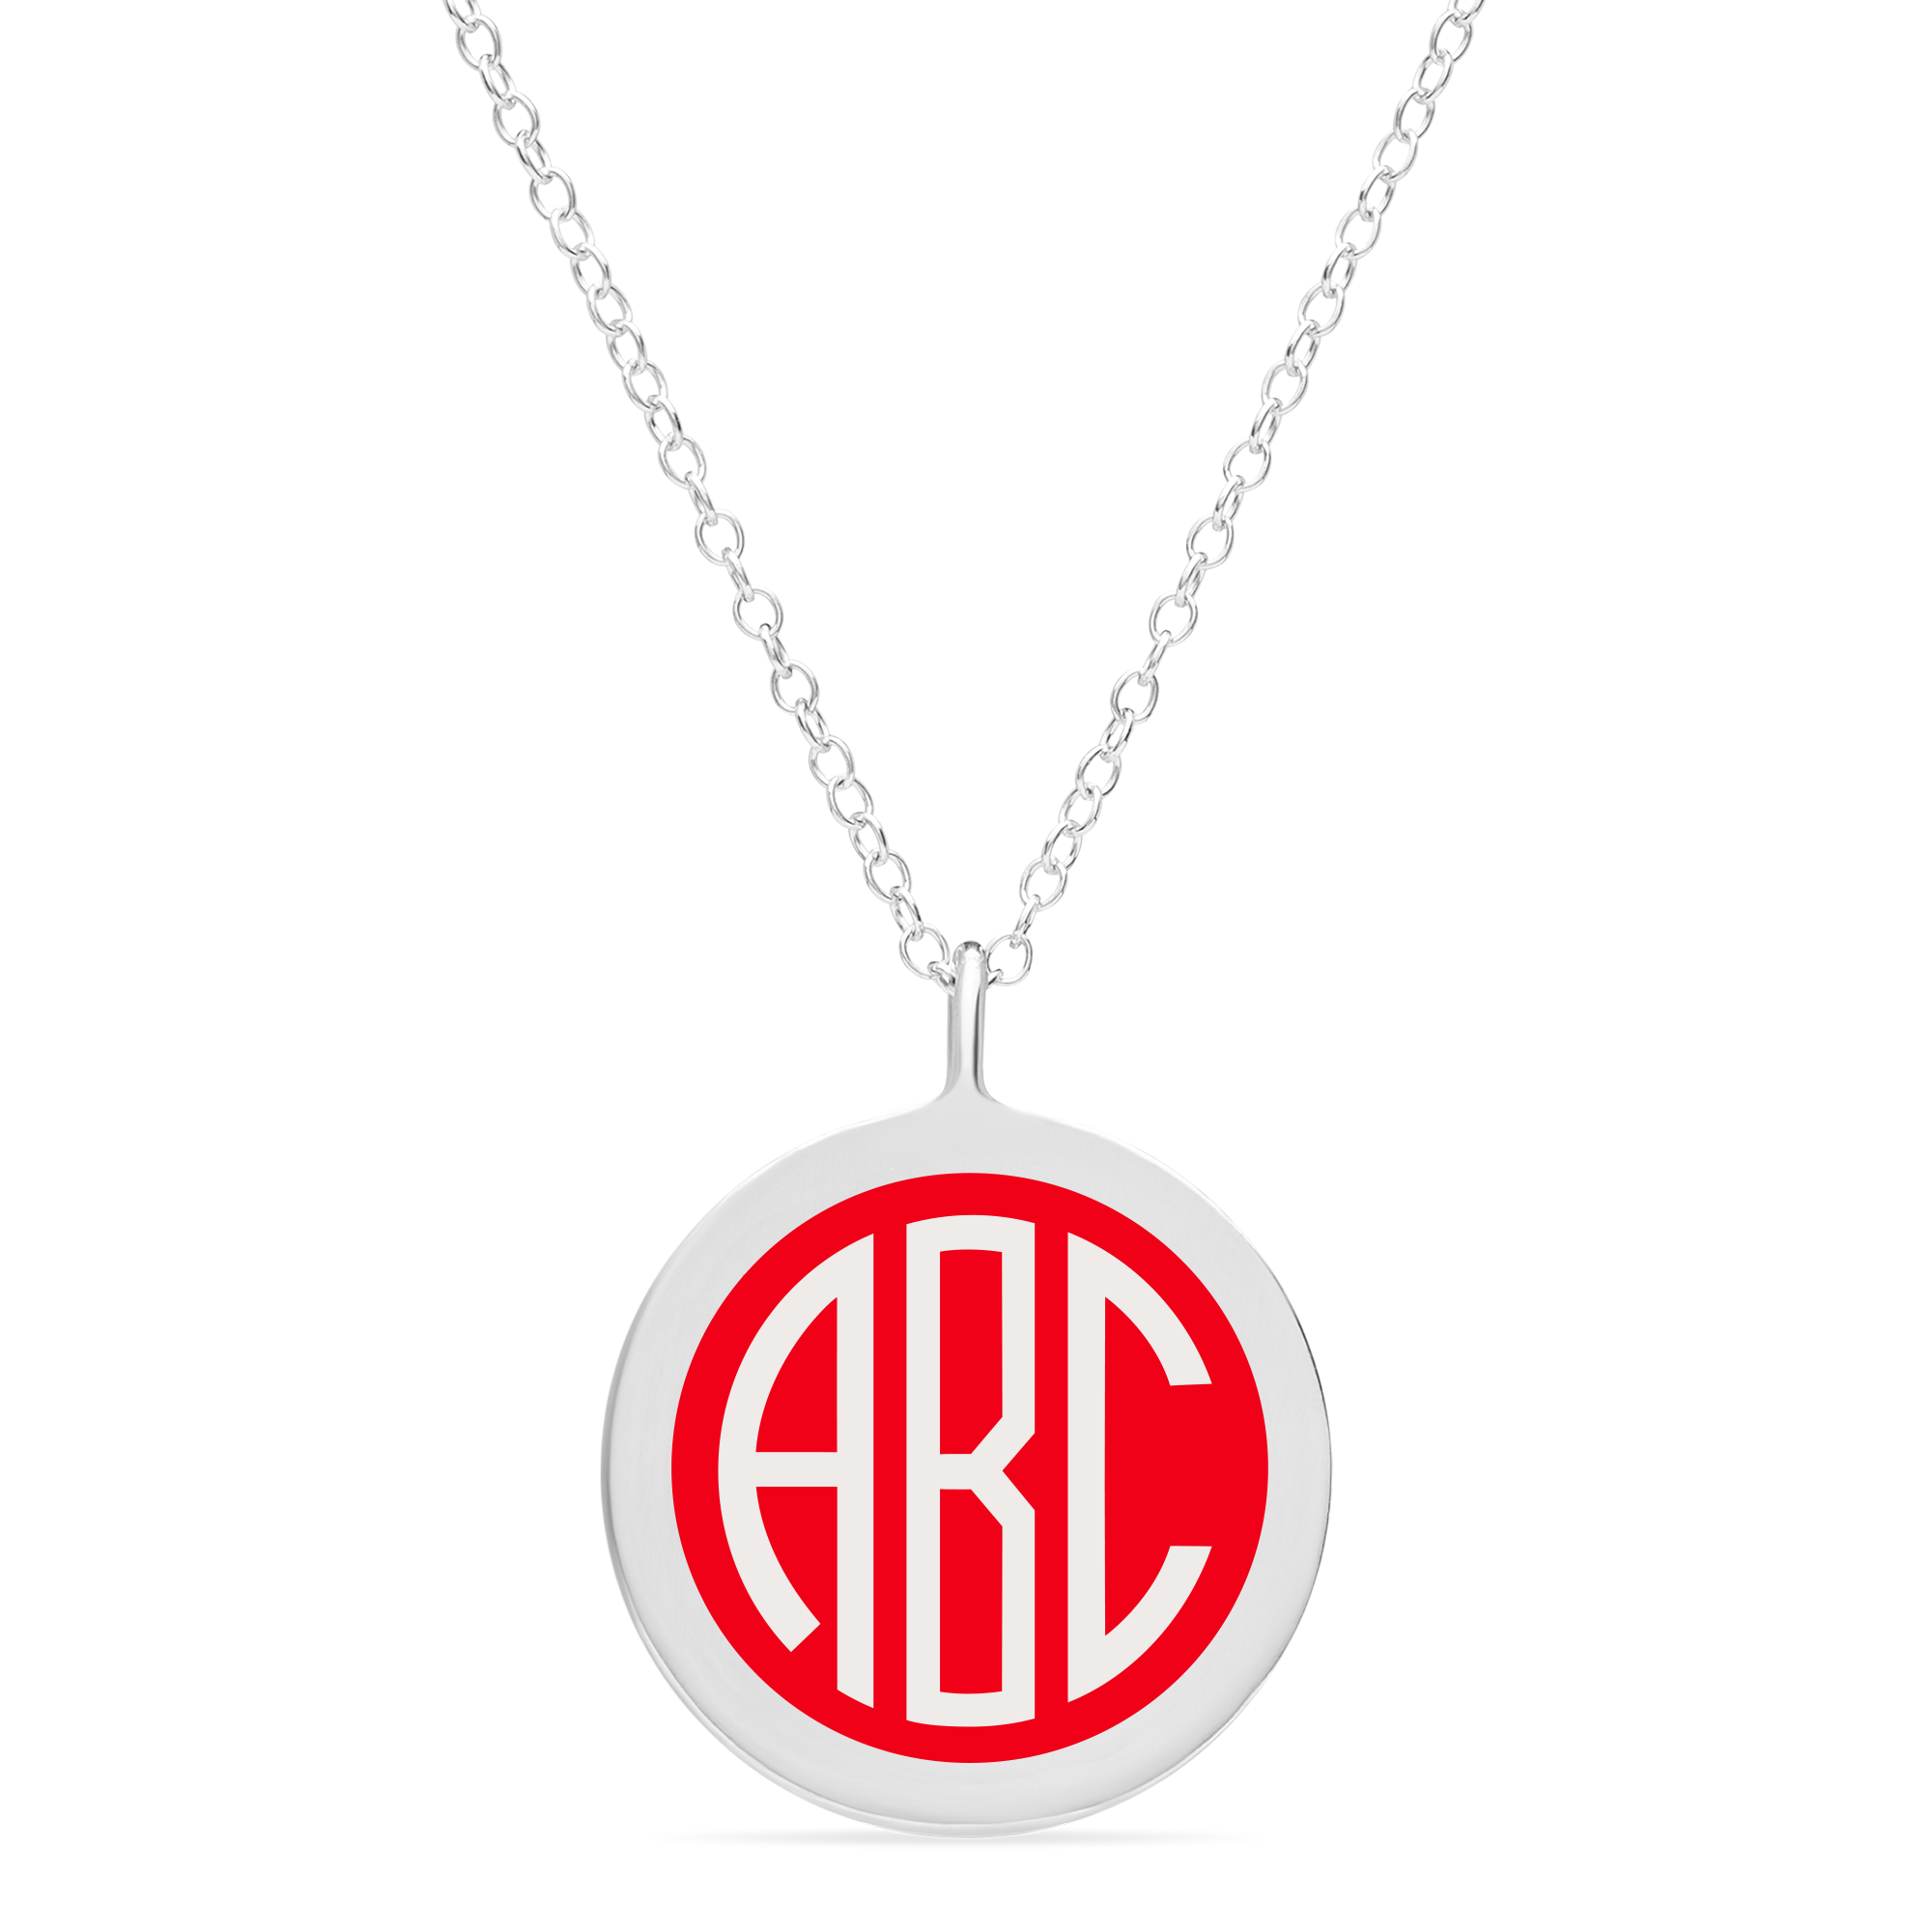 BESPOKE LARGE MONOGRAM CHARM in sterling silver